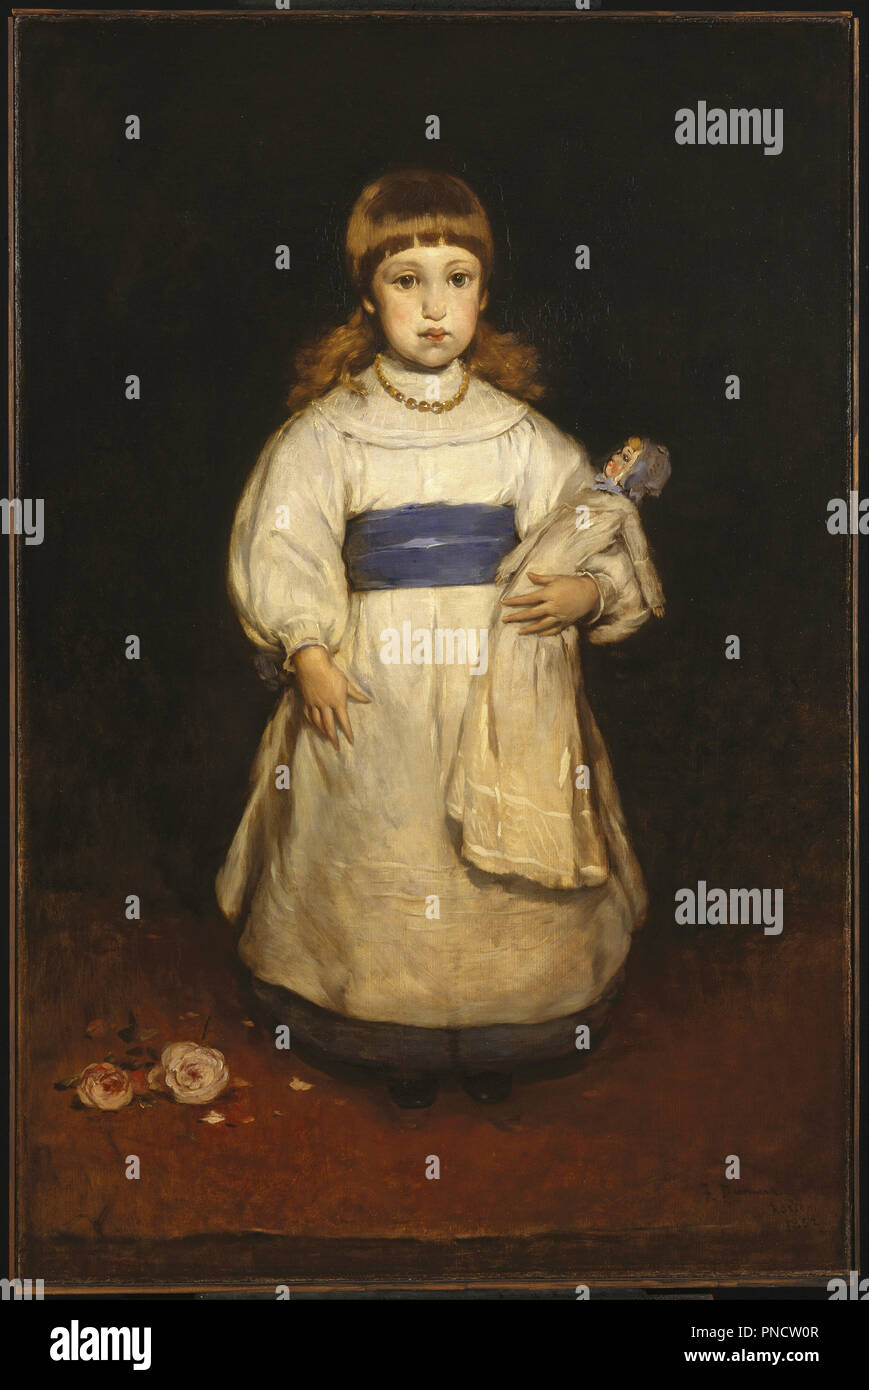 Mary Cabot Wheelwright. Date/Period: 1882. Painting. Oil on canvas. Height: 127.5 cm (50.1 in); Width: 84 cm (33 in). Author: Frank Duveneck. - Stock Image